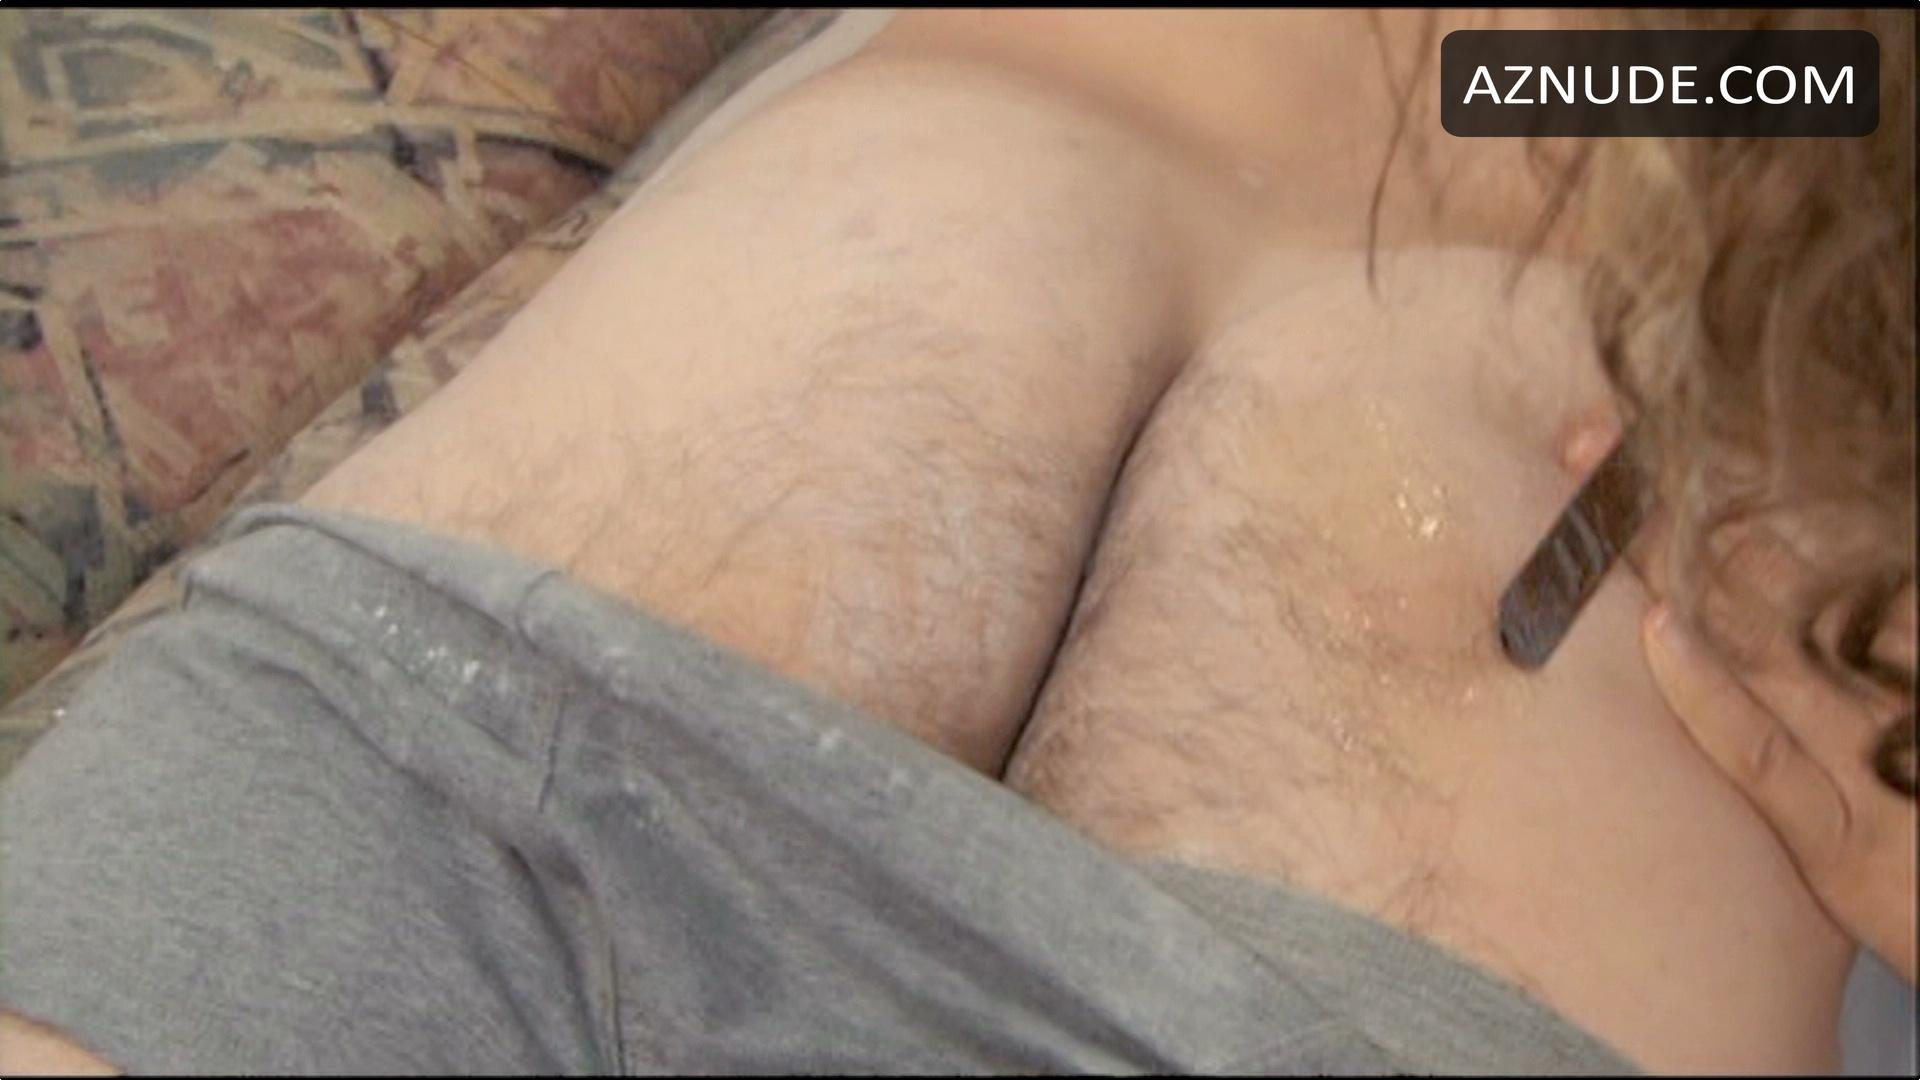 Thomas american ross pie mile naked